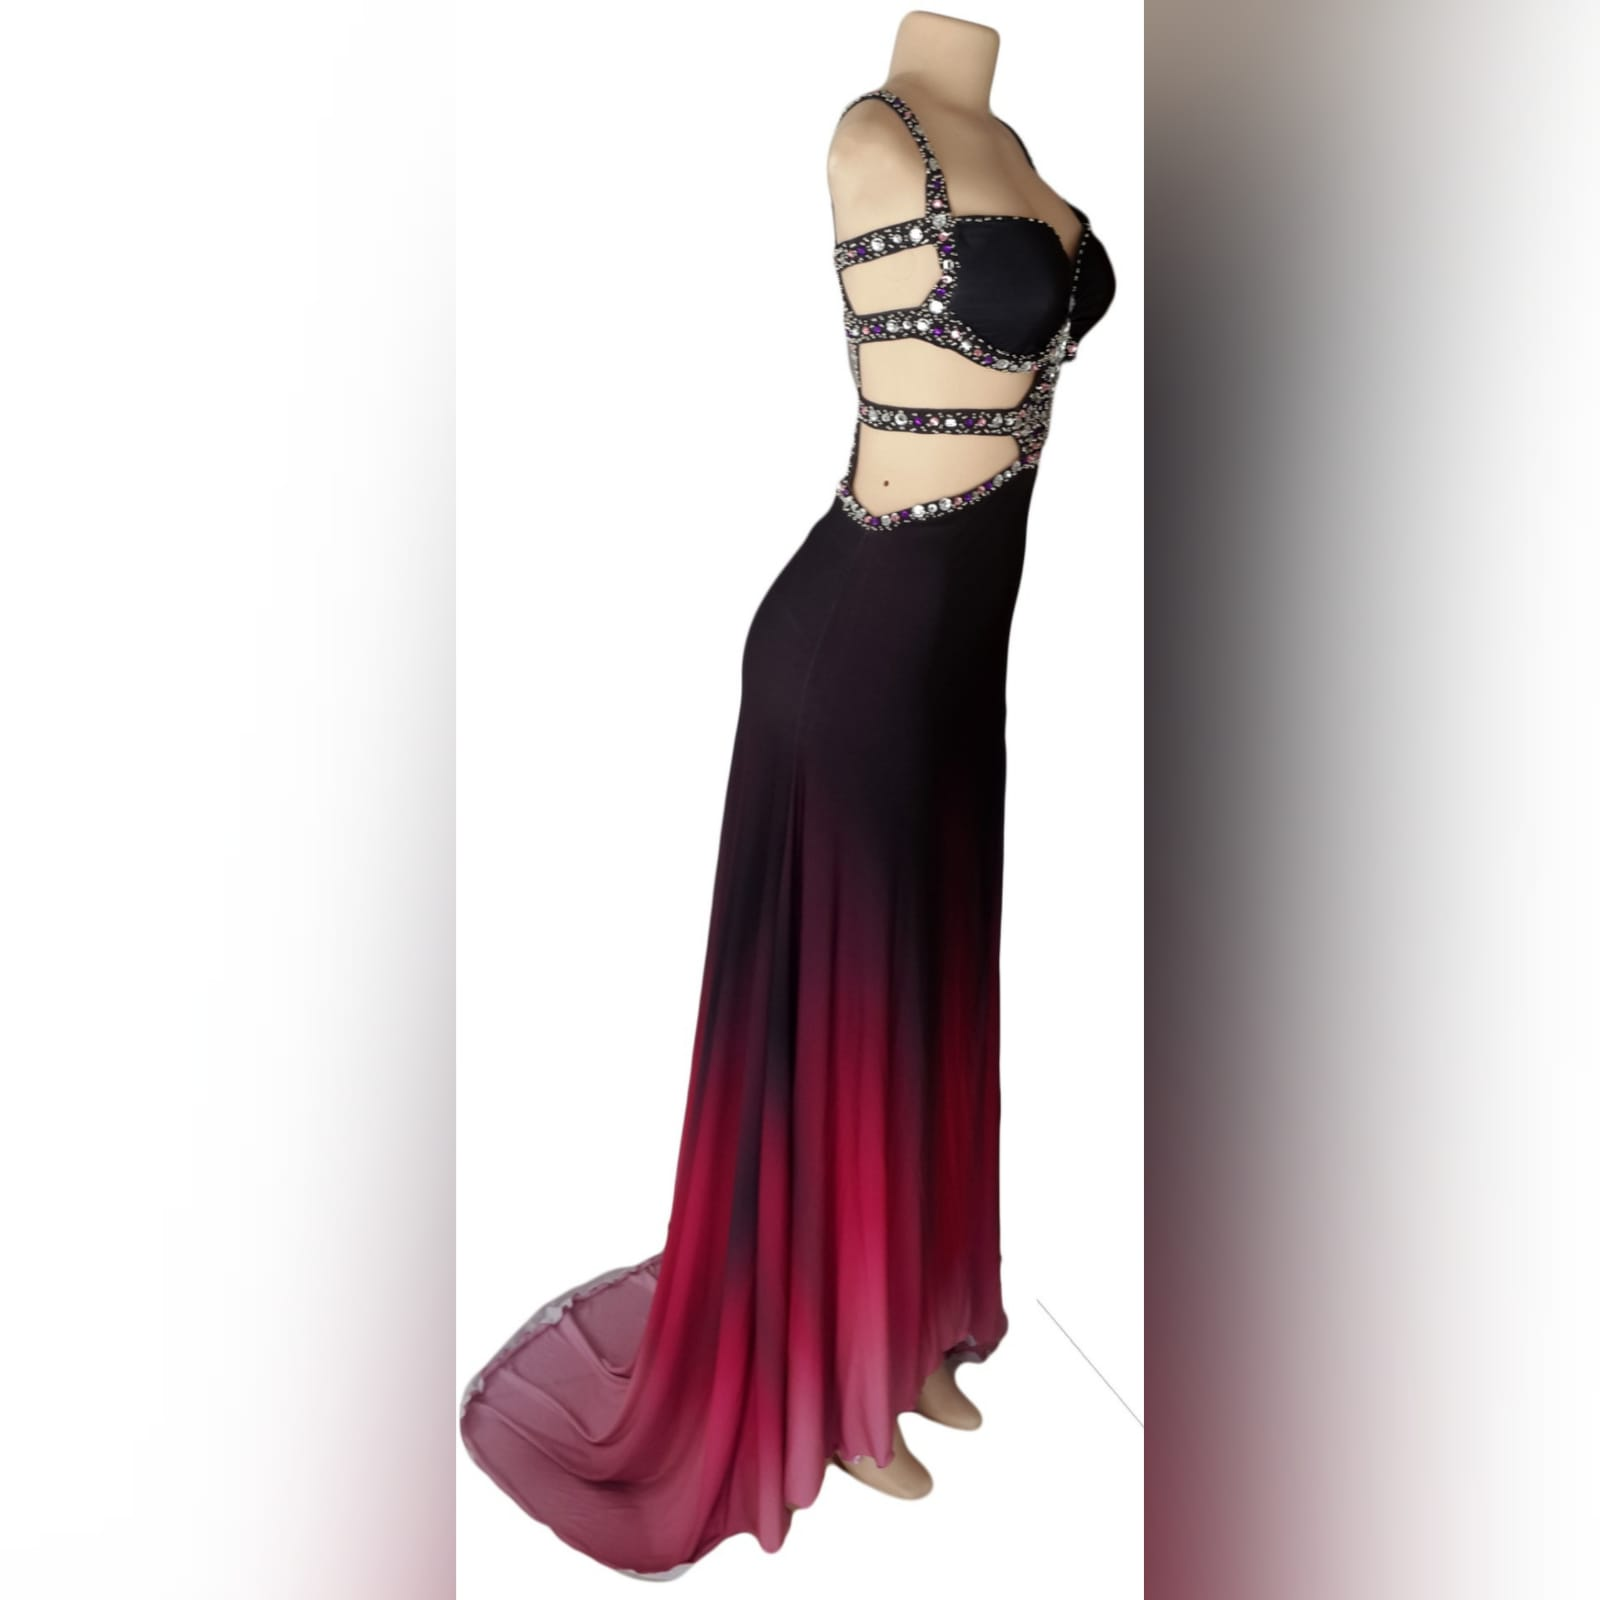 Black pink ombre sexy prom dress 10 black and pink ombre sexy prom dress. With a slit and a train. With tummy and back openings detailed with silver and pink beads.